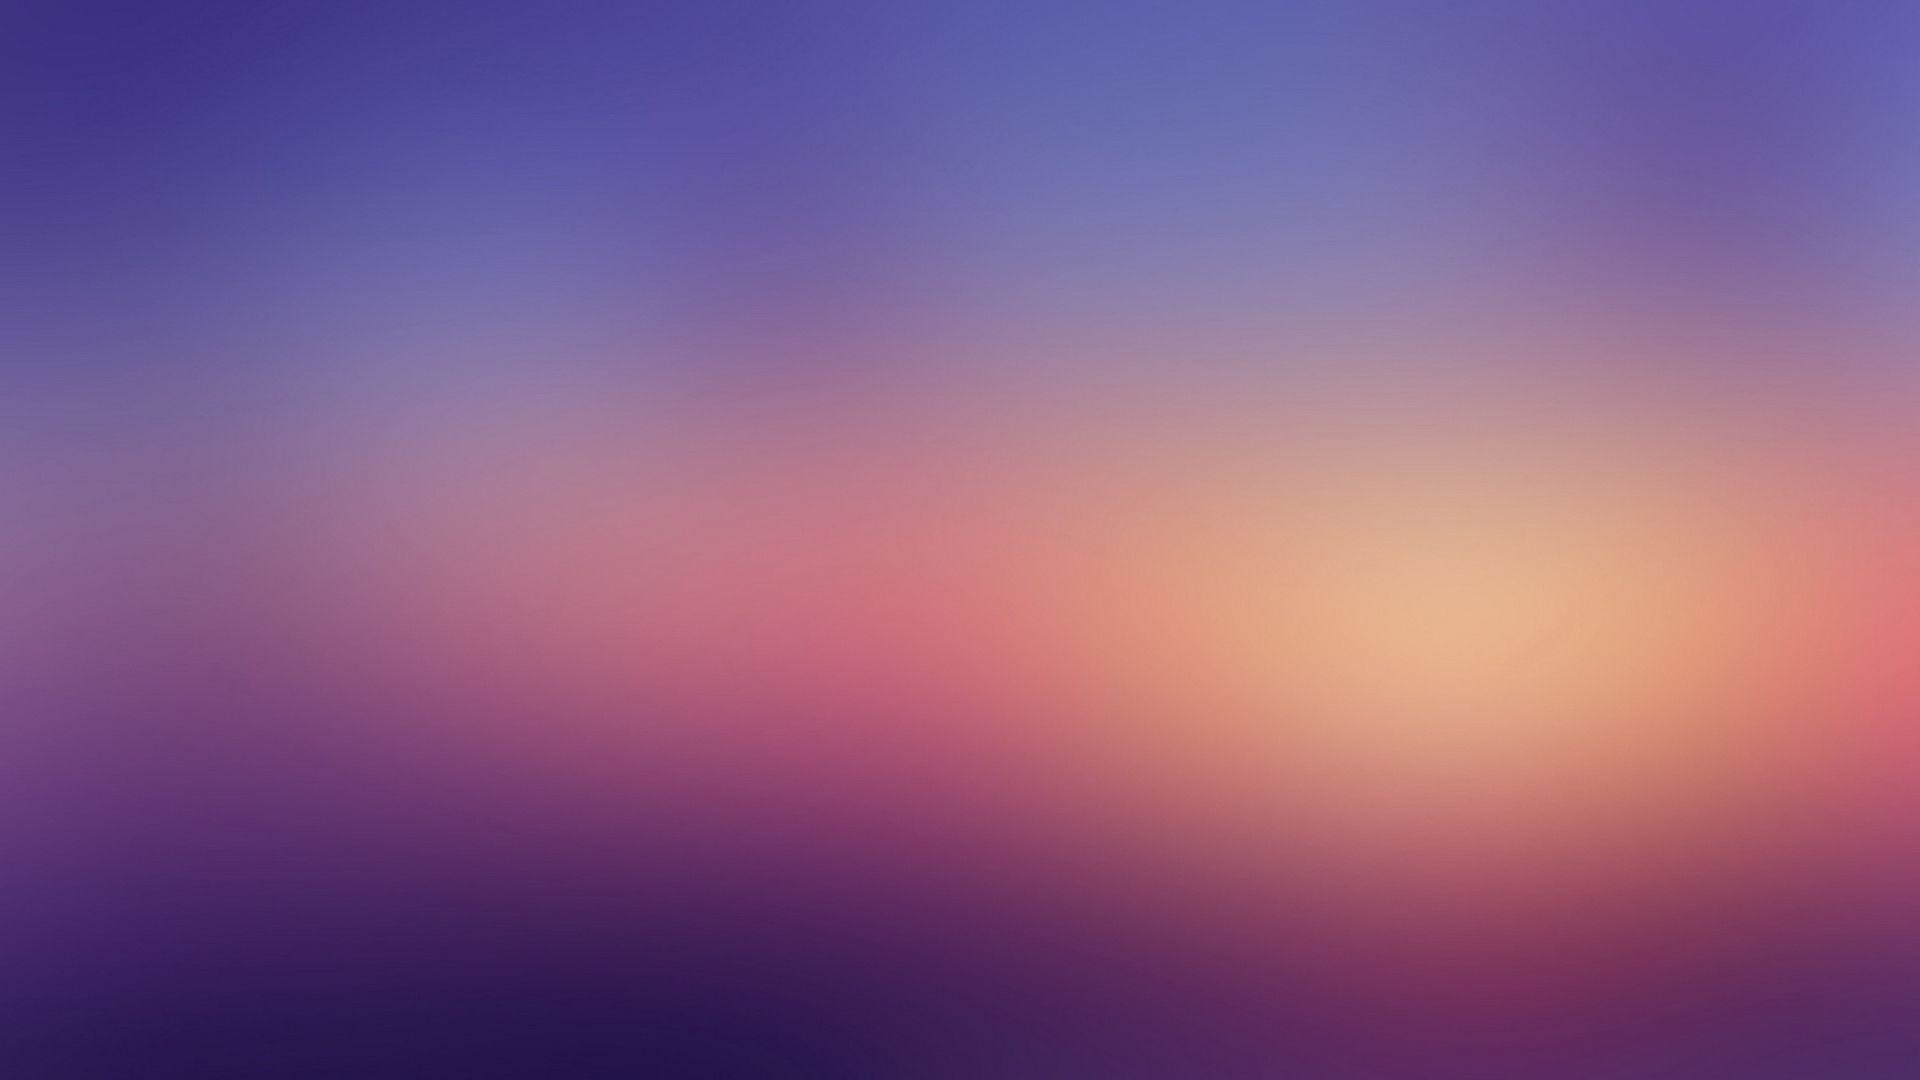 Orange and purple backgrounds 53 images for Imagenes para fondo de pantalla wallpapers